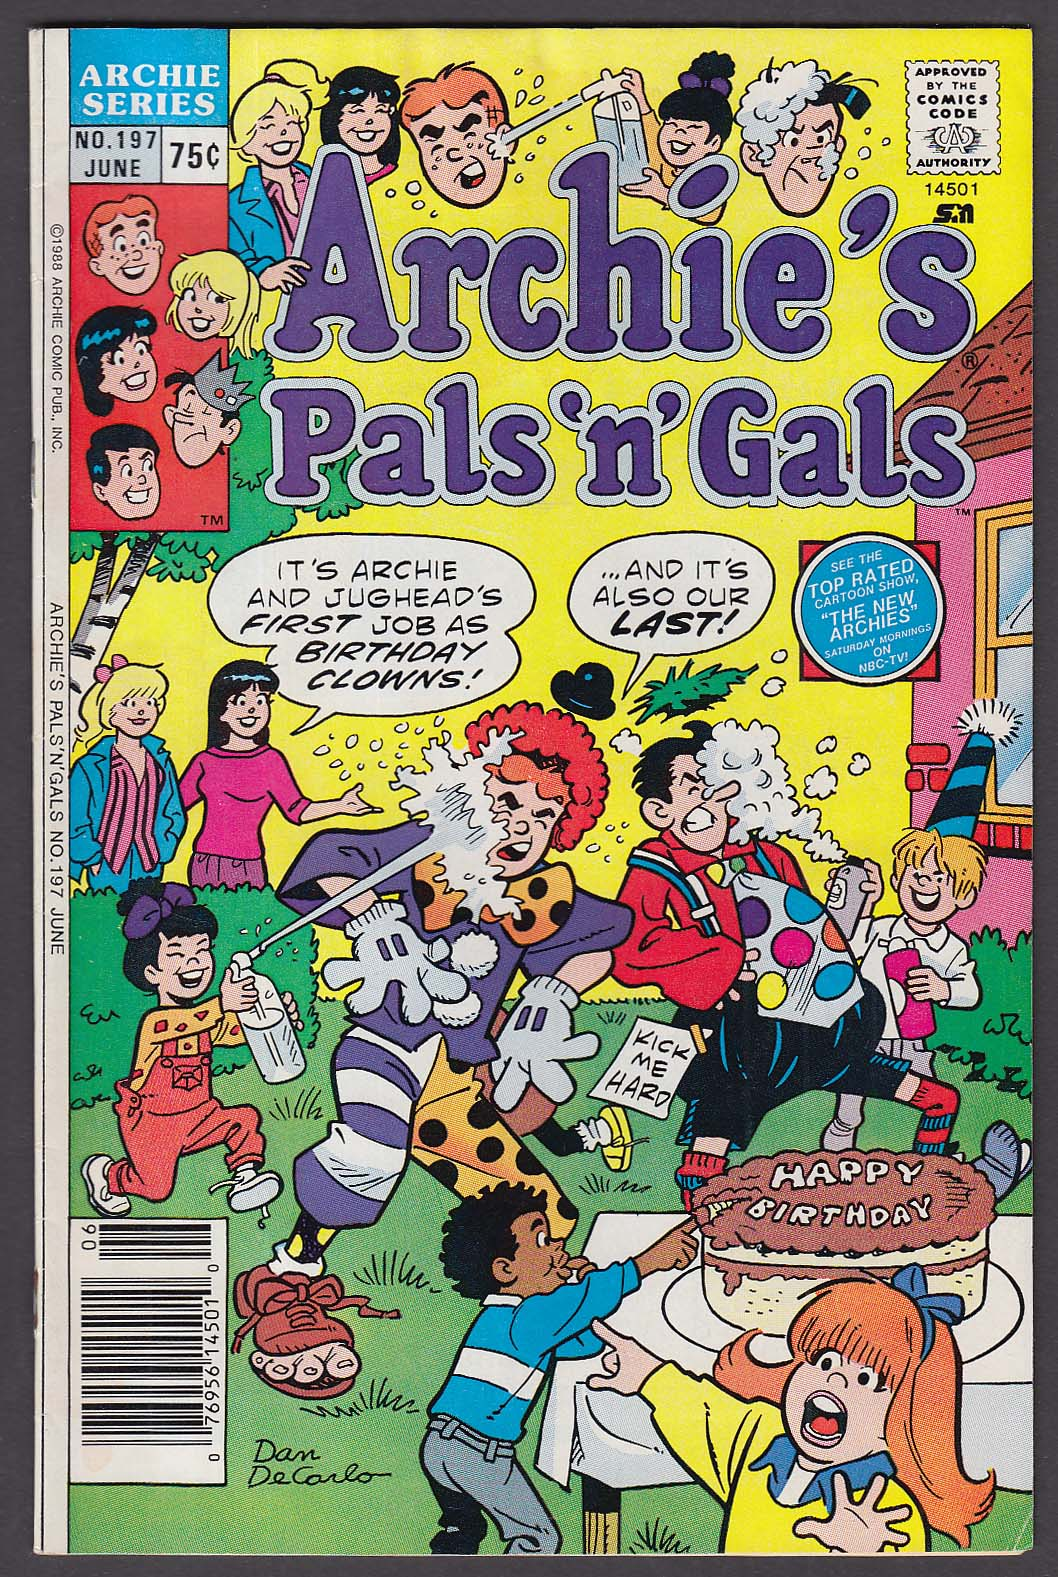 ARCHIE'S Pals 'n' Gals #197 Archie Series comic book 6 1988